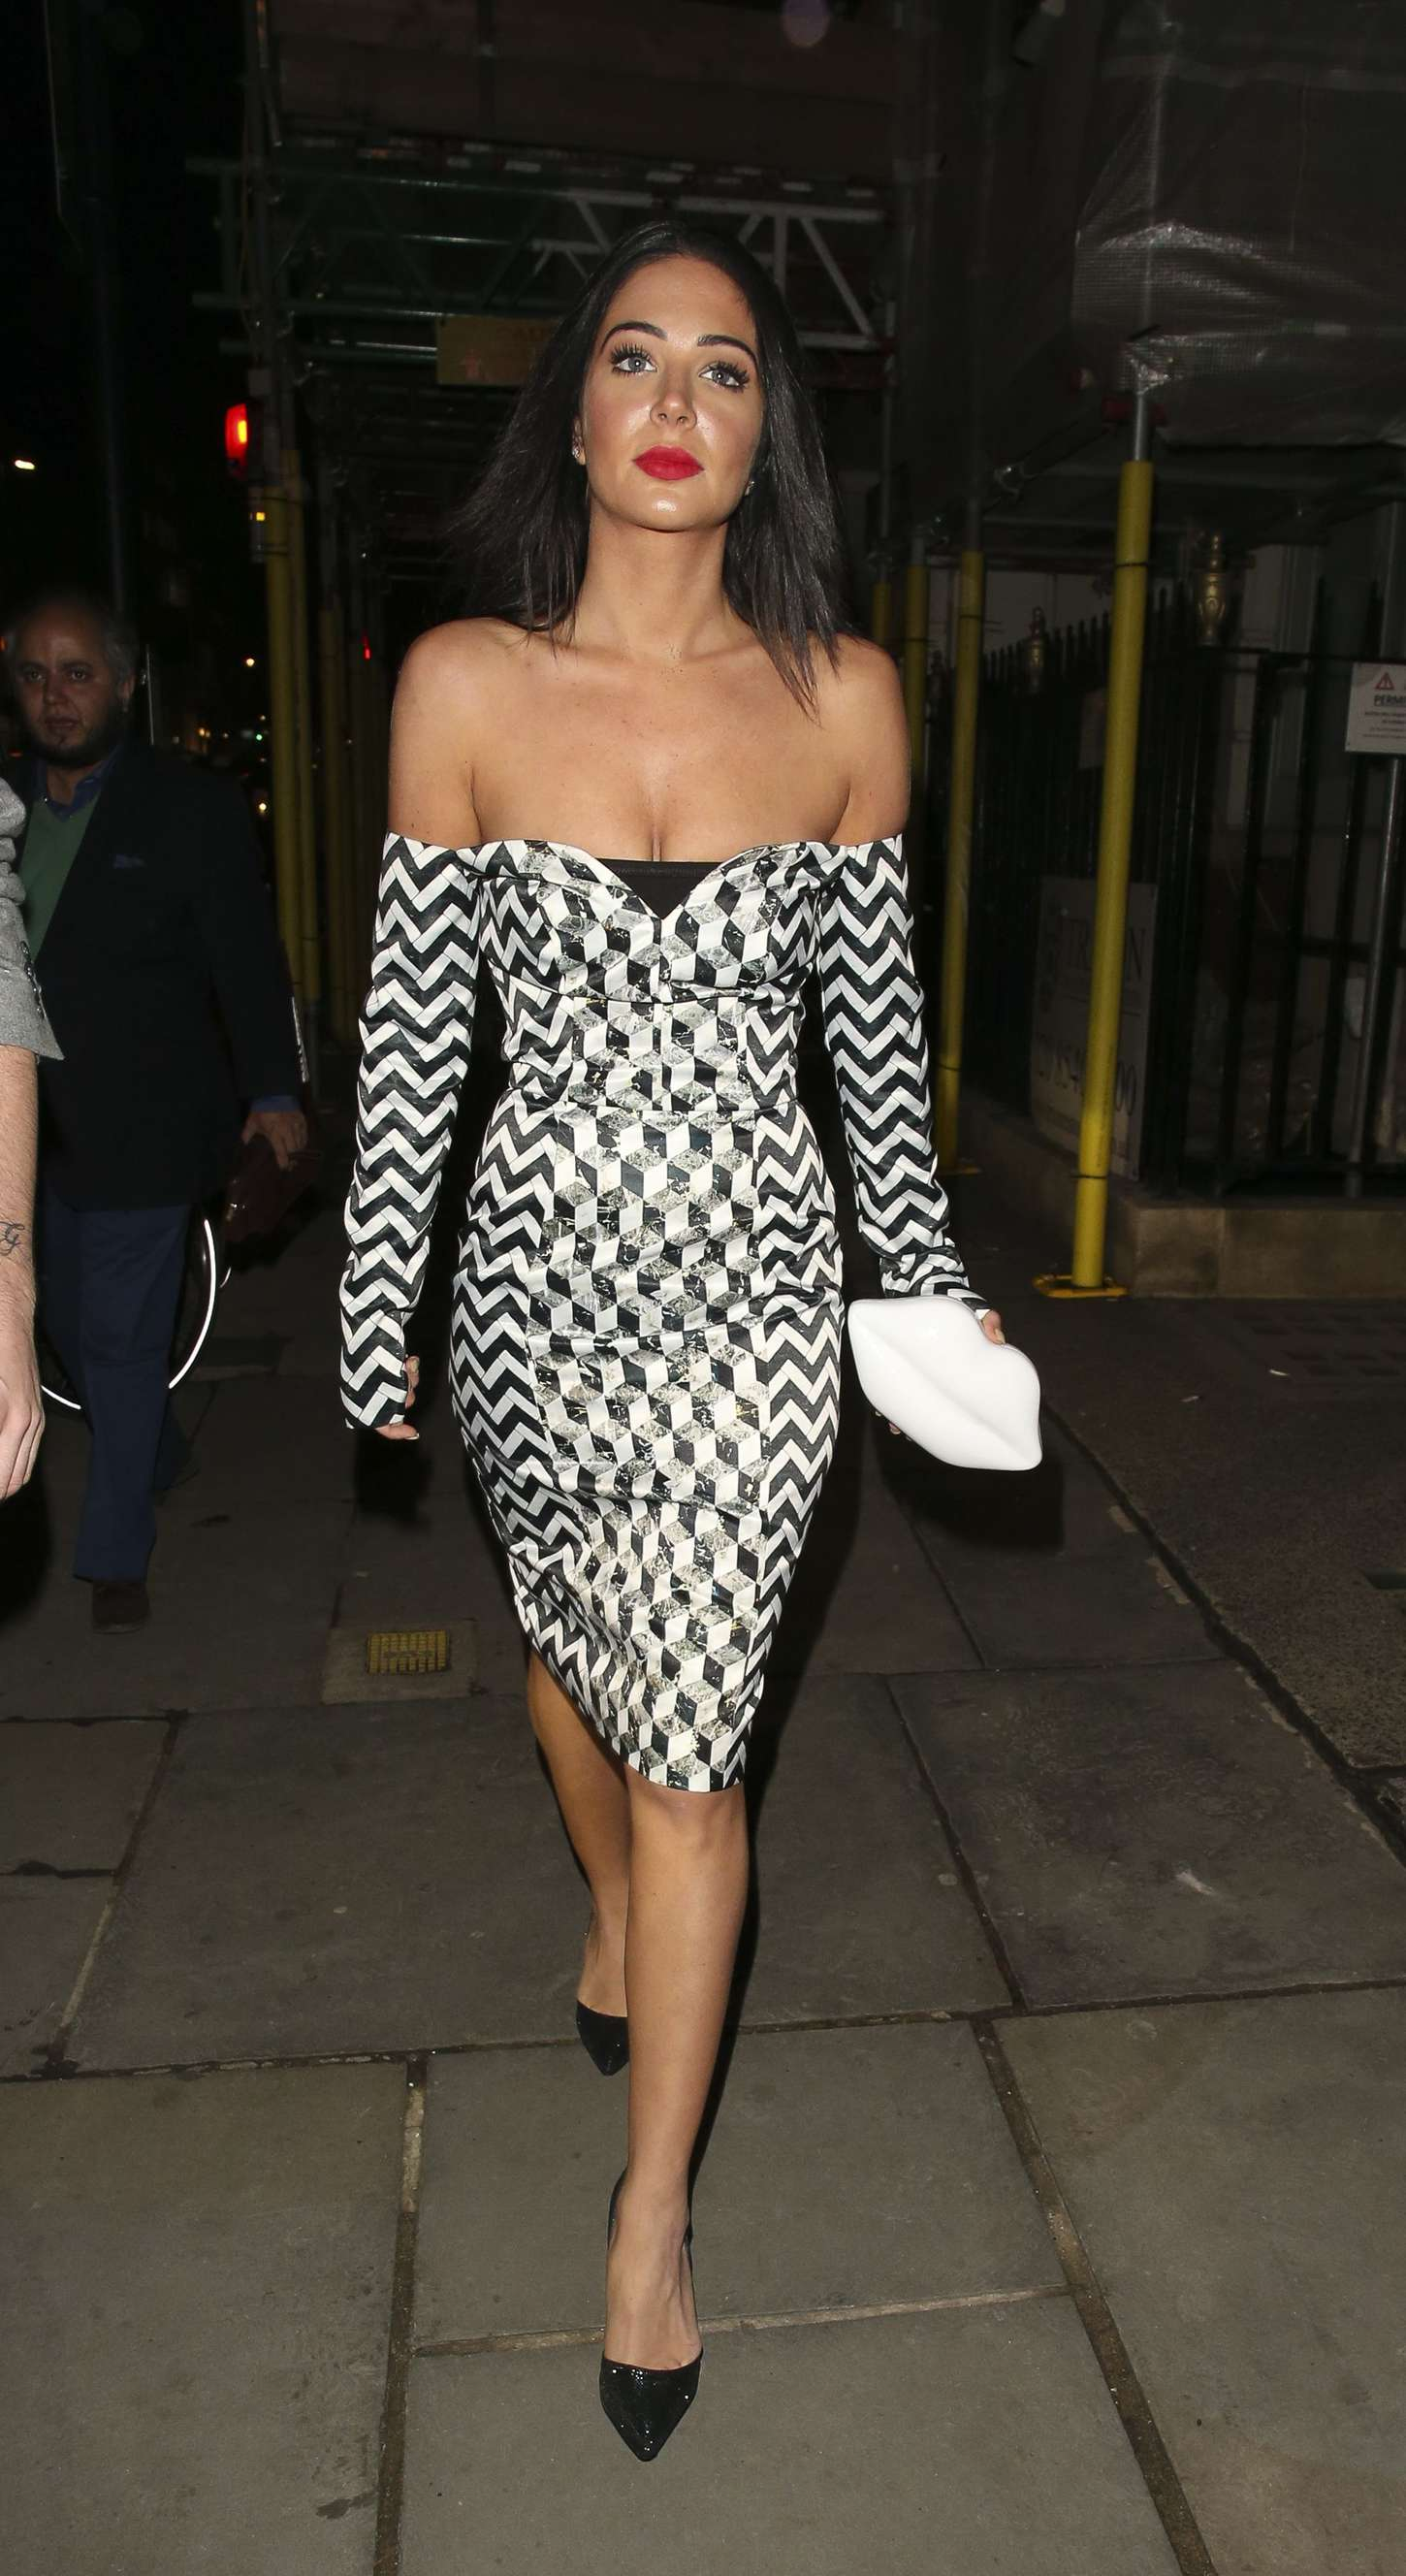 Tulisa Contostavlos at Professor Jonathan Shalit's OBE Party in London